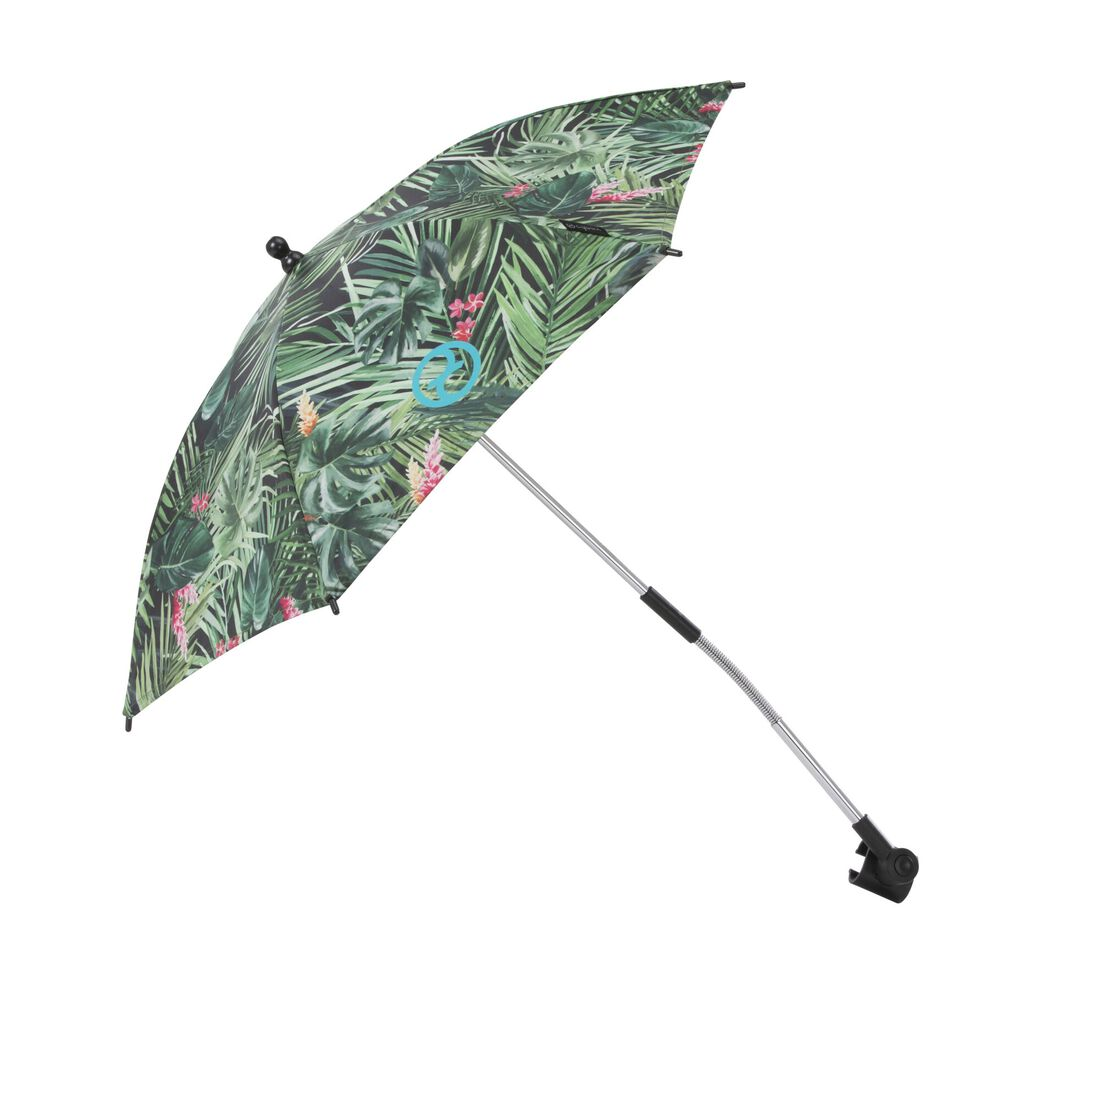 CYBEX Platinum Stroller Parasol - We The Best in We The Best large image number 1